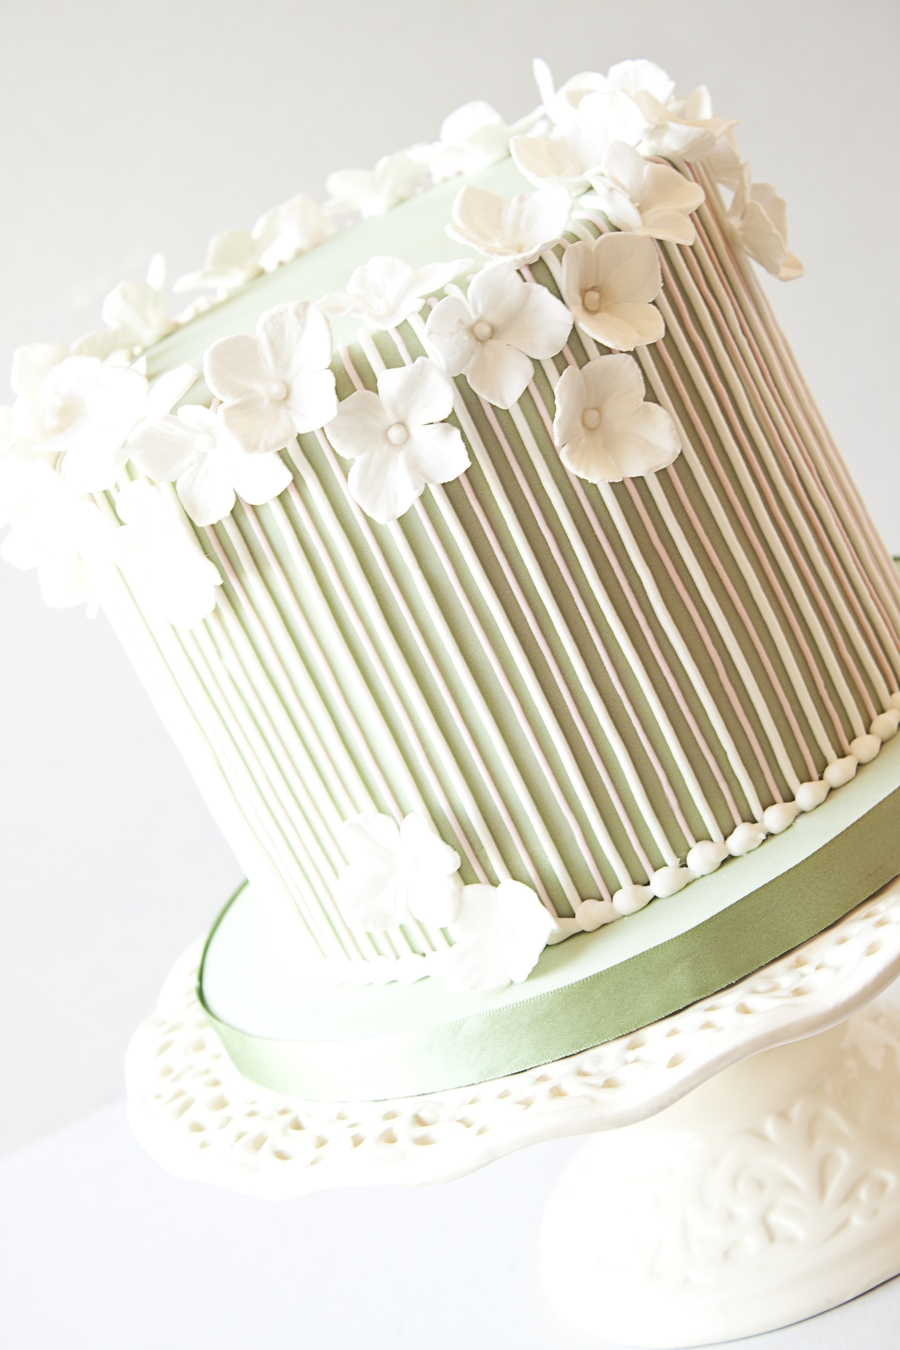 Striped Vintage Birthday Cake Cakecentral Com